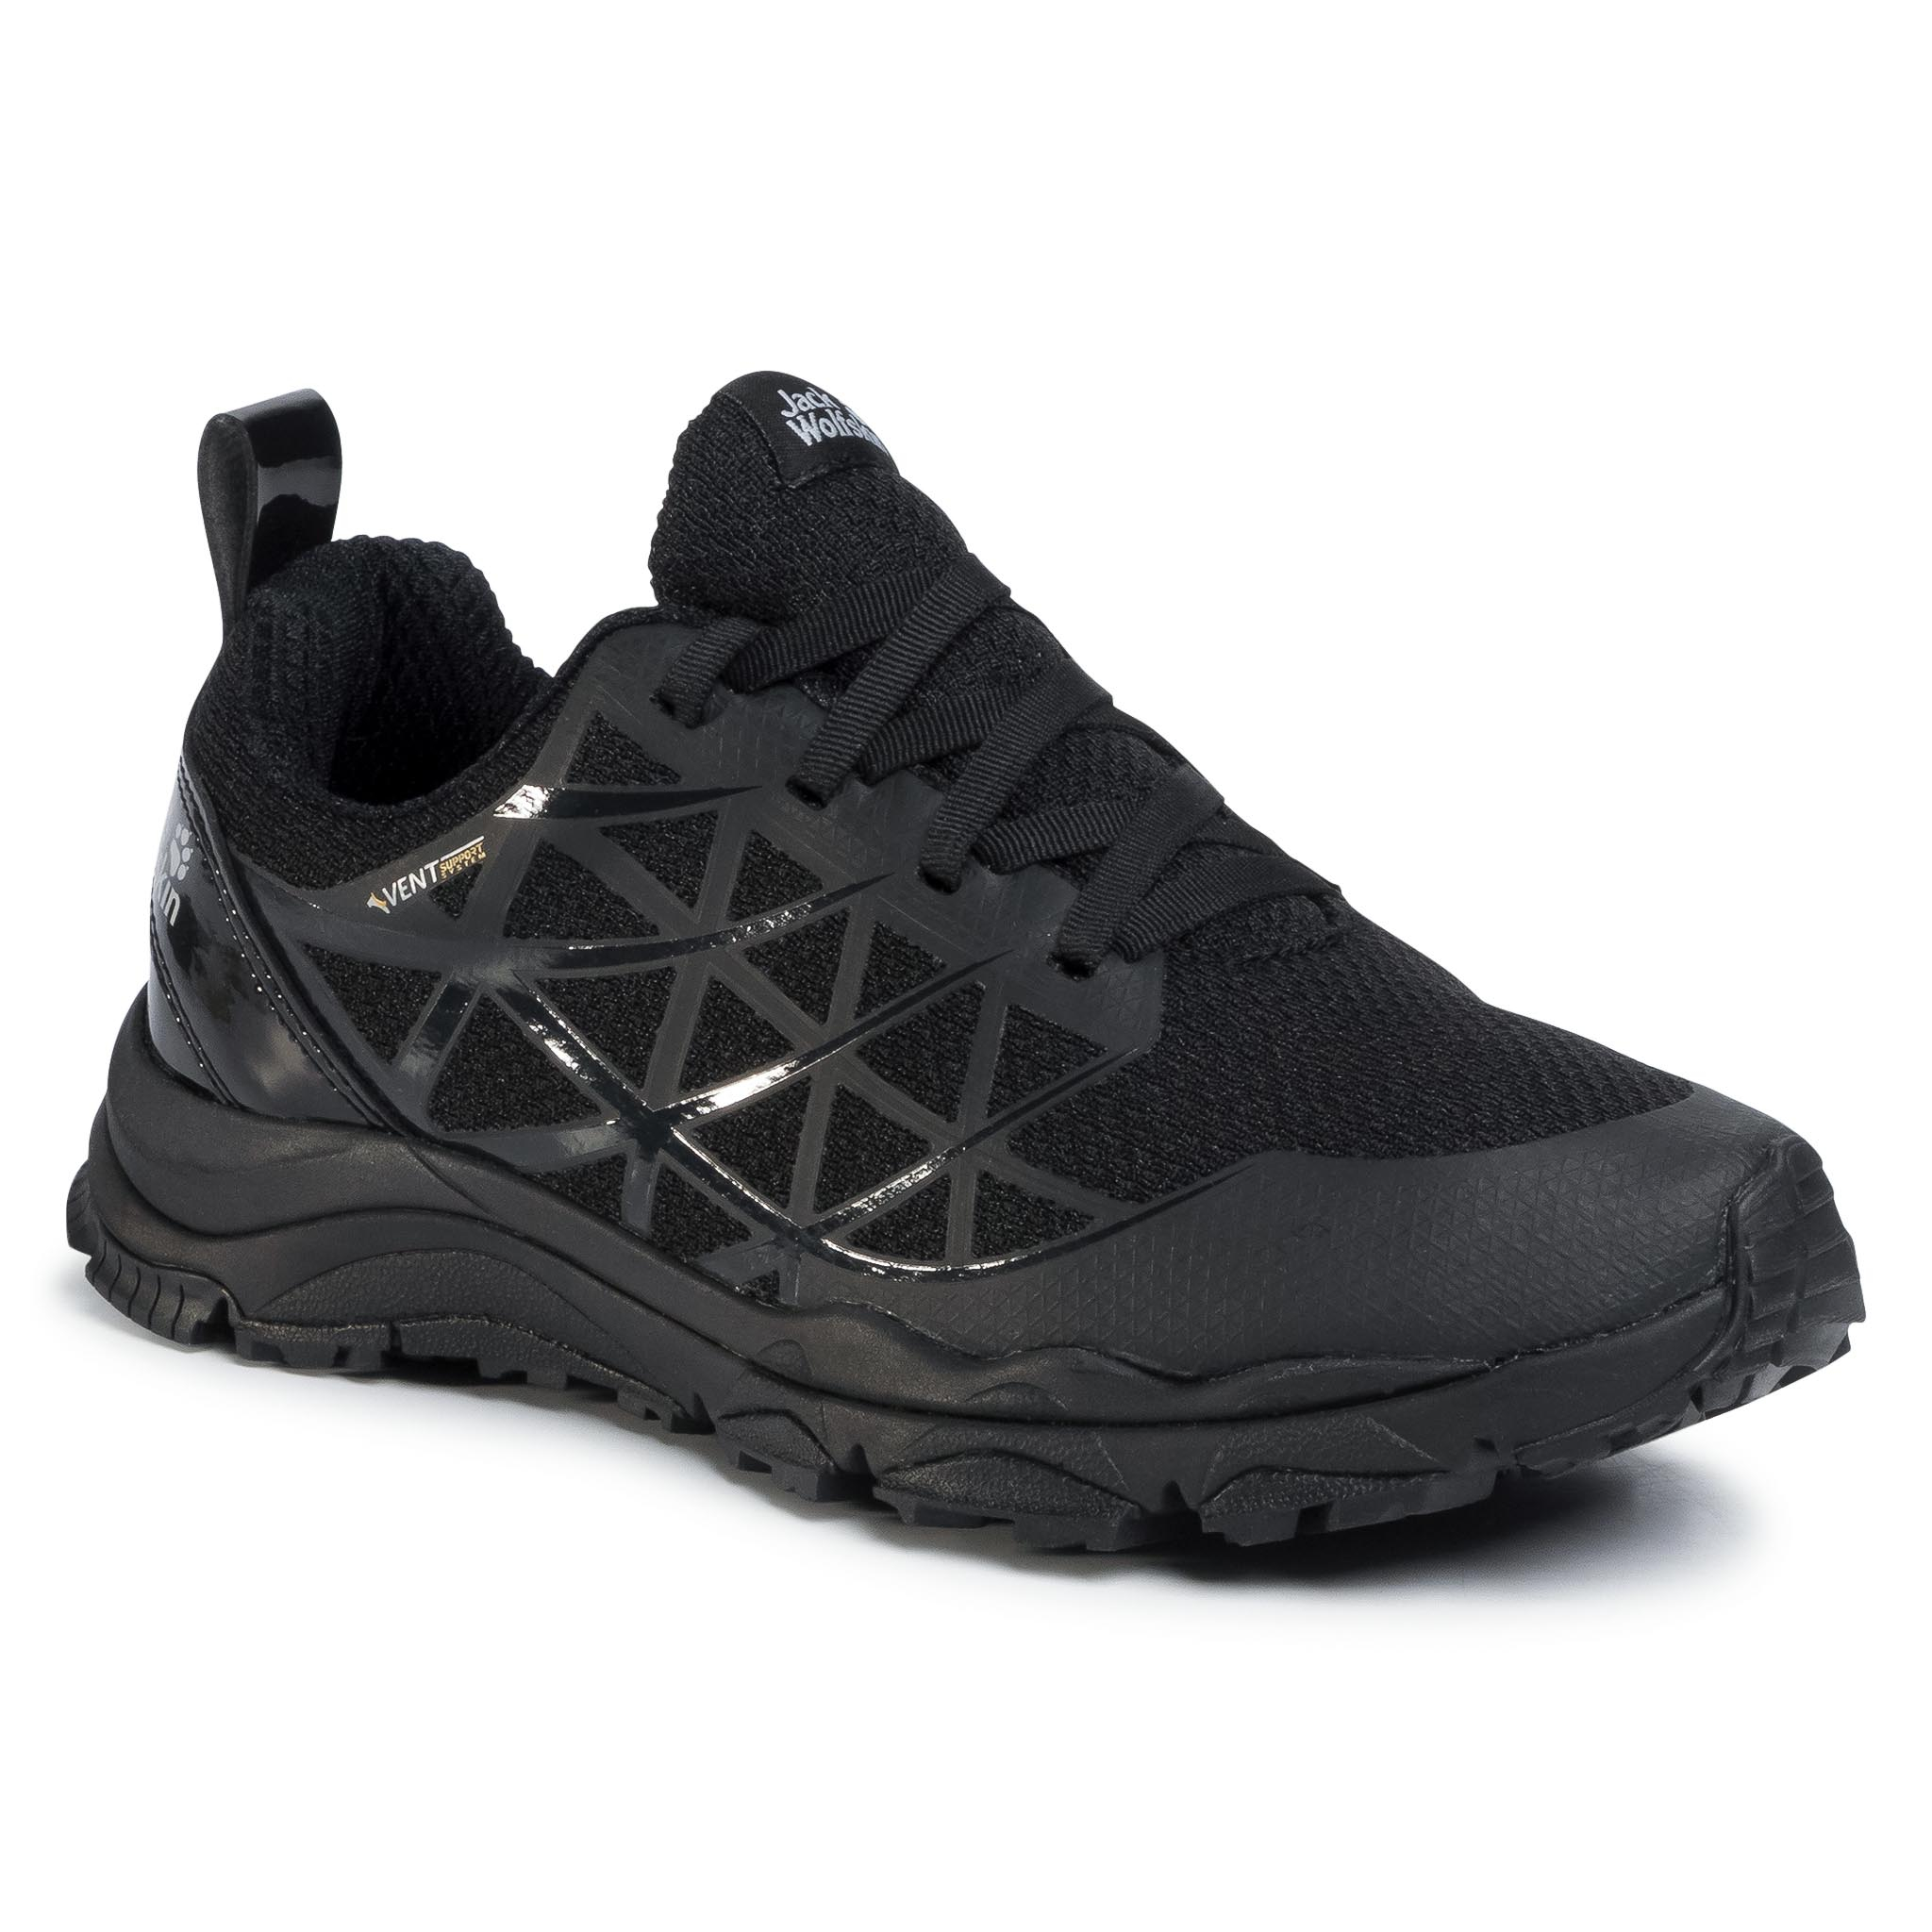 Trekkings Jack Wolfskin - Trail Blaze Vennt Low M 4040921 Black imagine epantofi.ro 2021